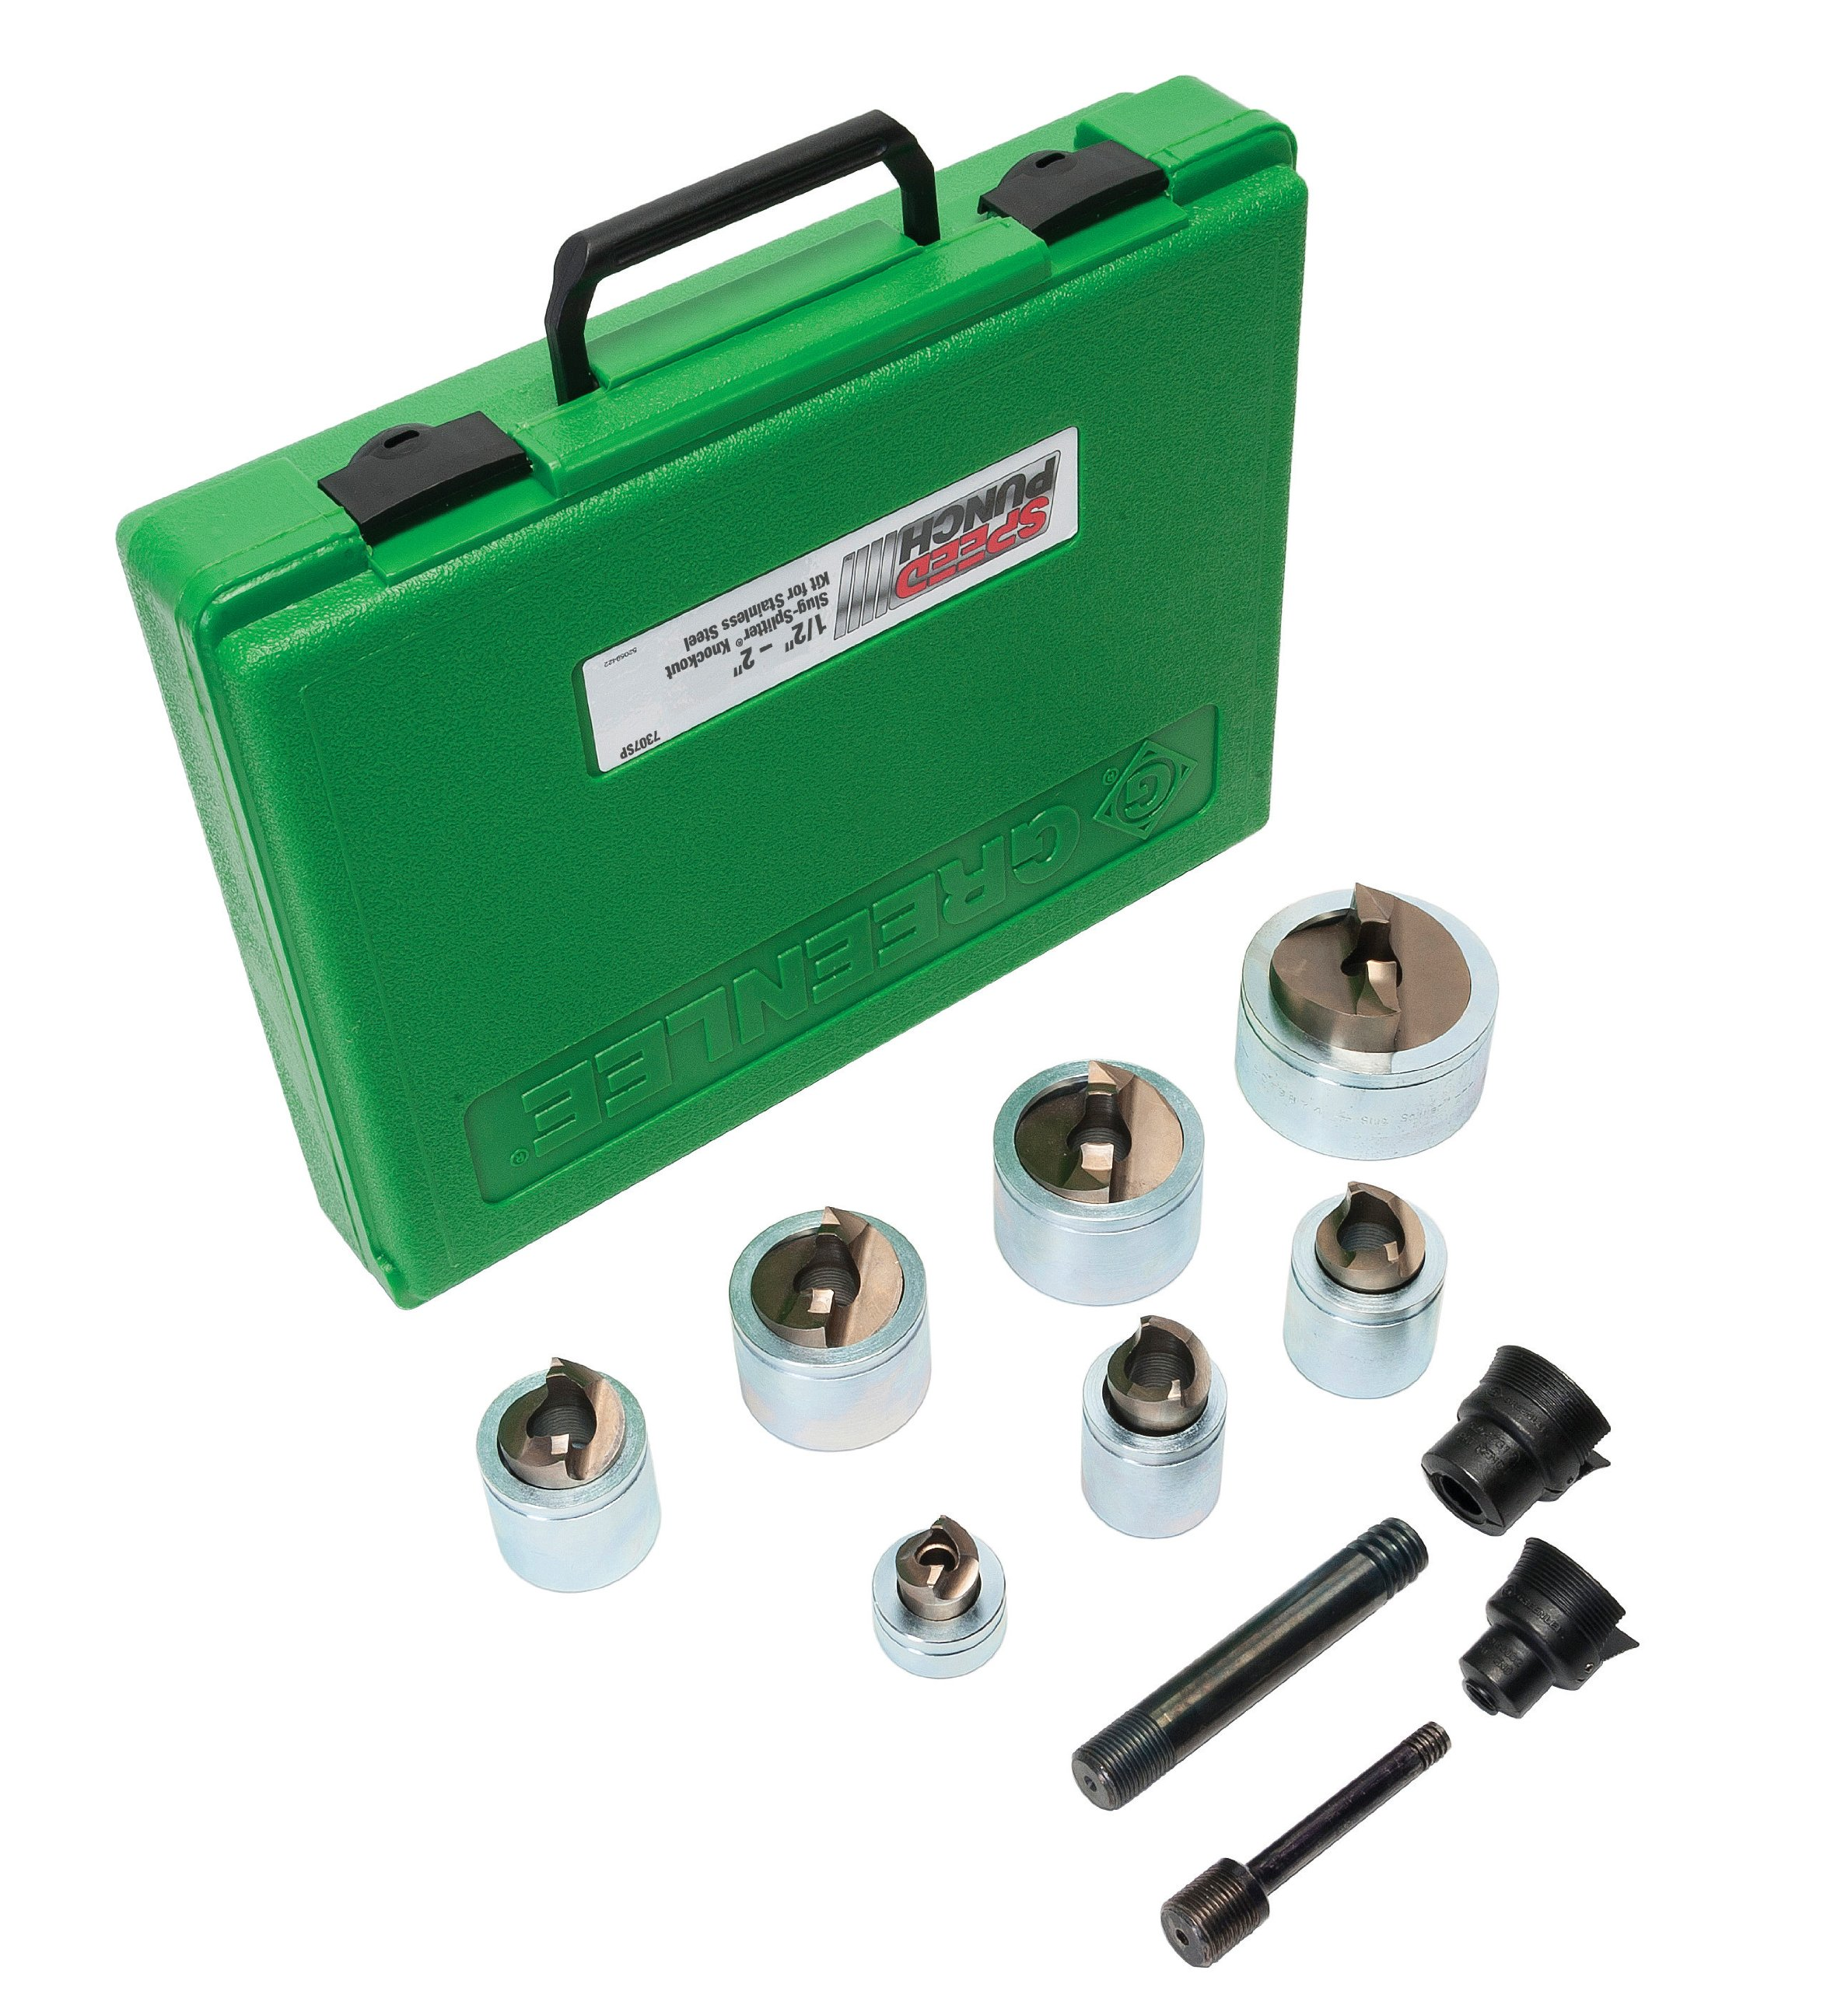 Greenlee 7307SP Kit Stainless Steel 1/2-Inch to 2-Inch Conduit